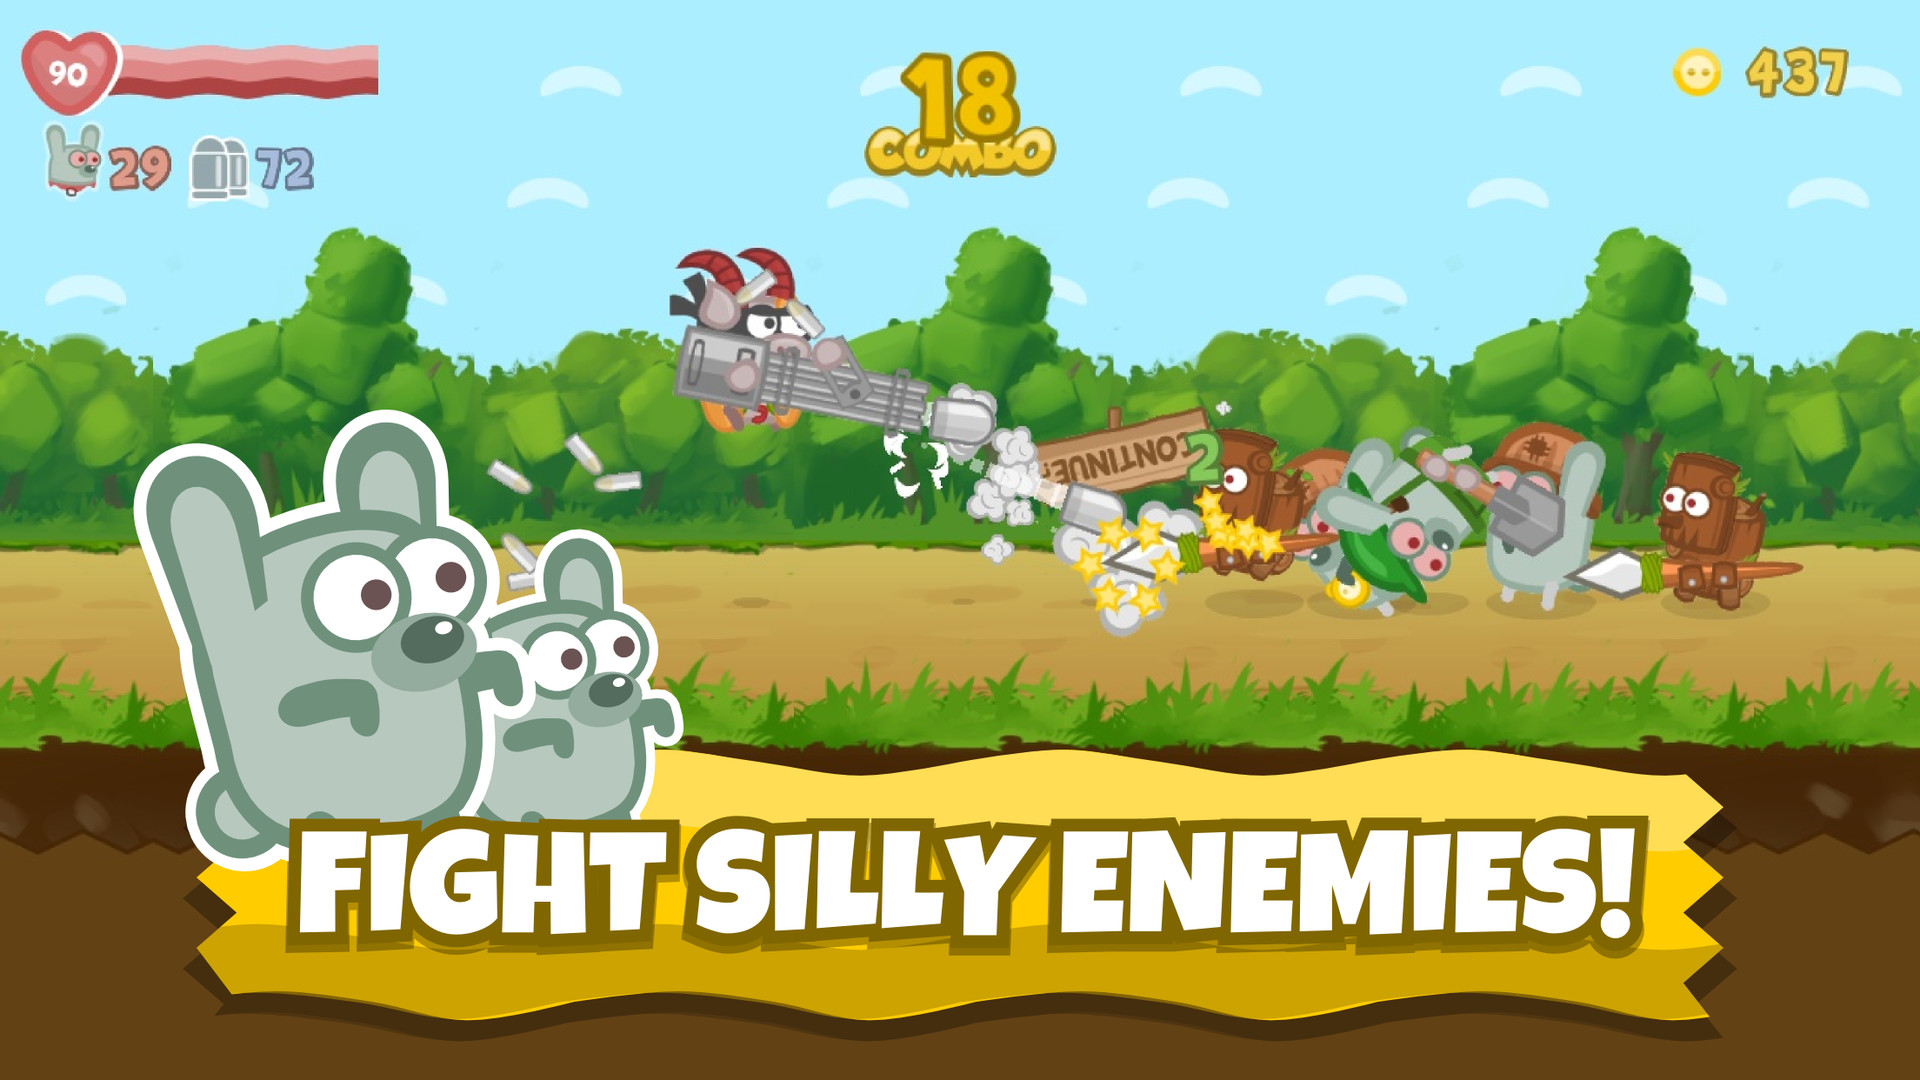 Bacon may die image: 'fight silly enemies'